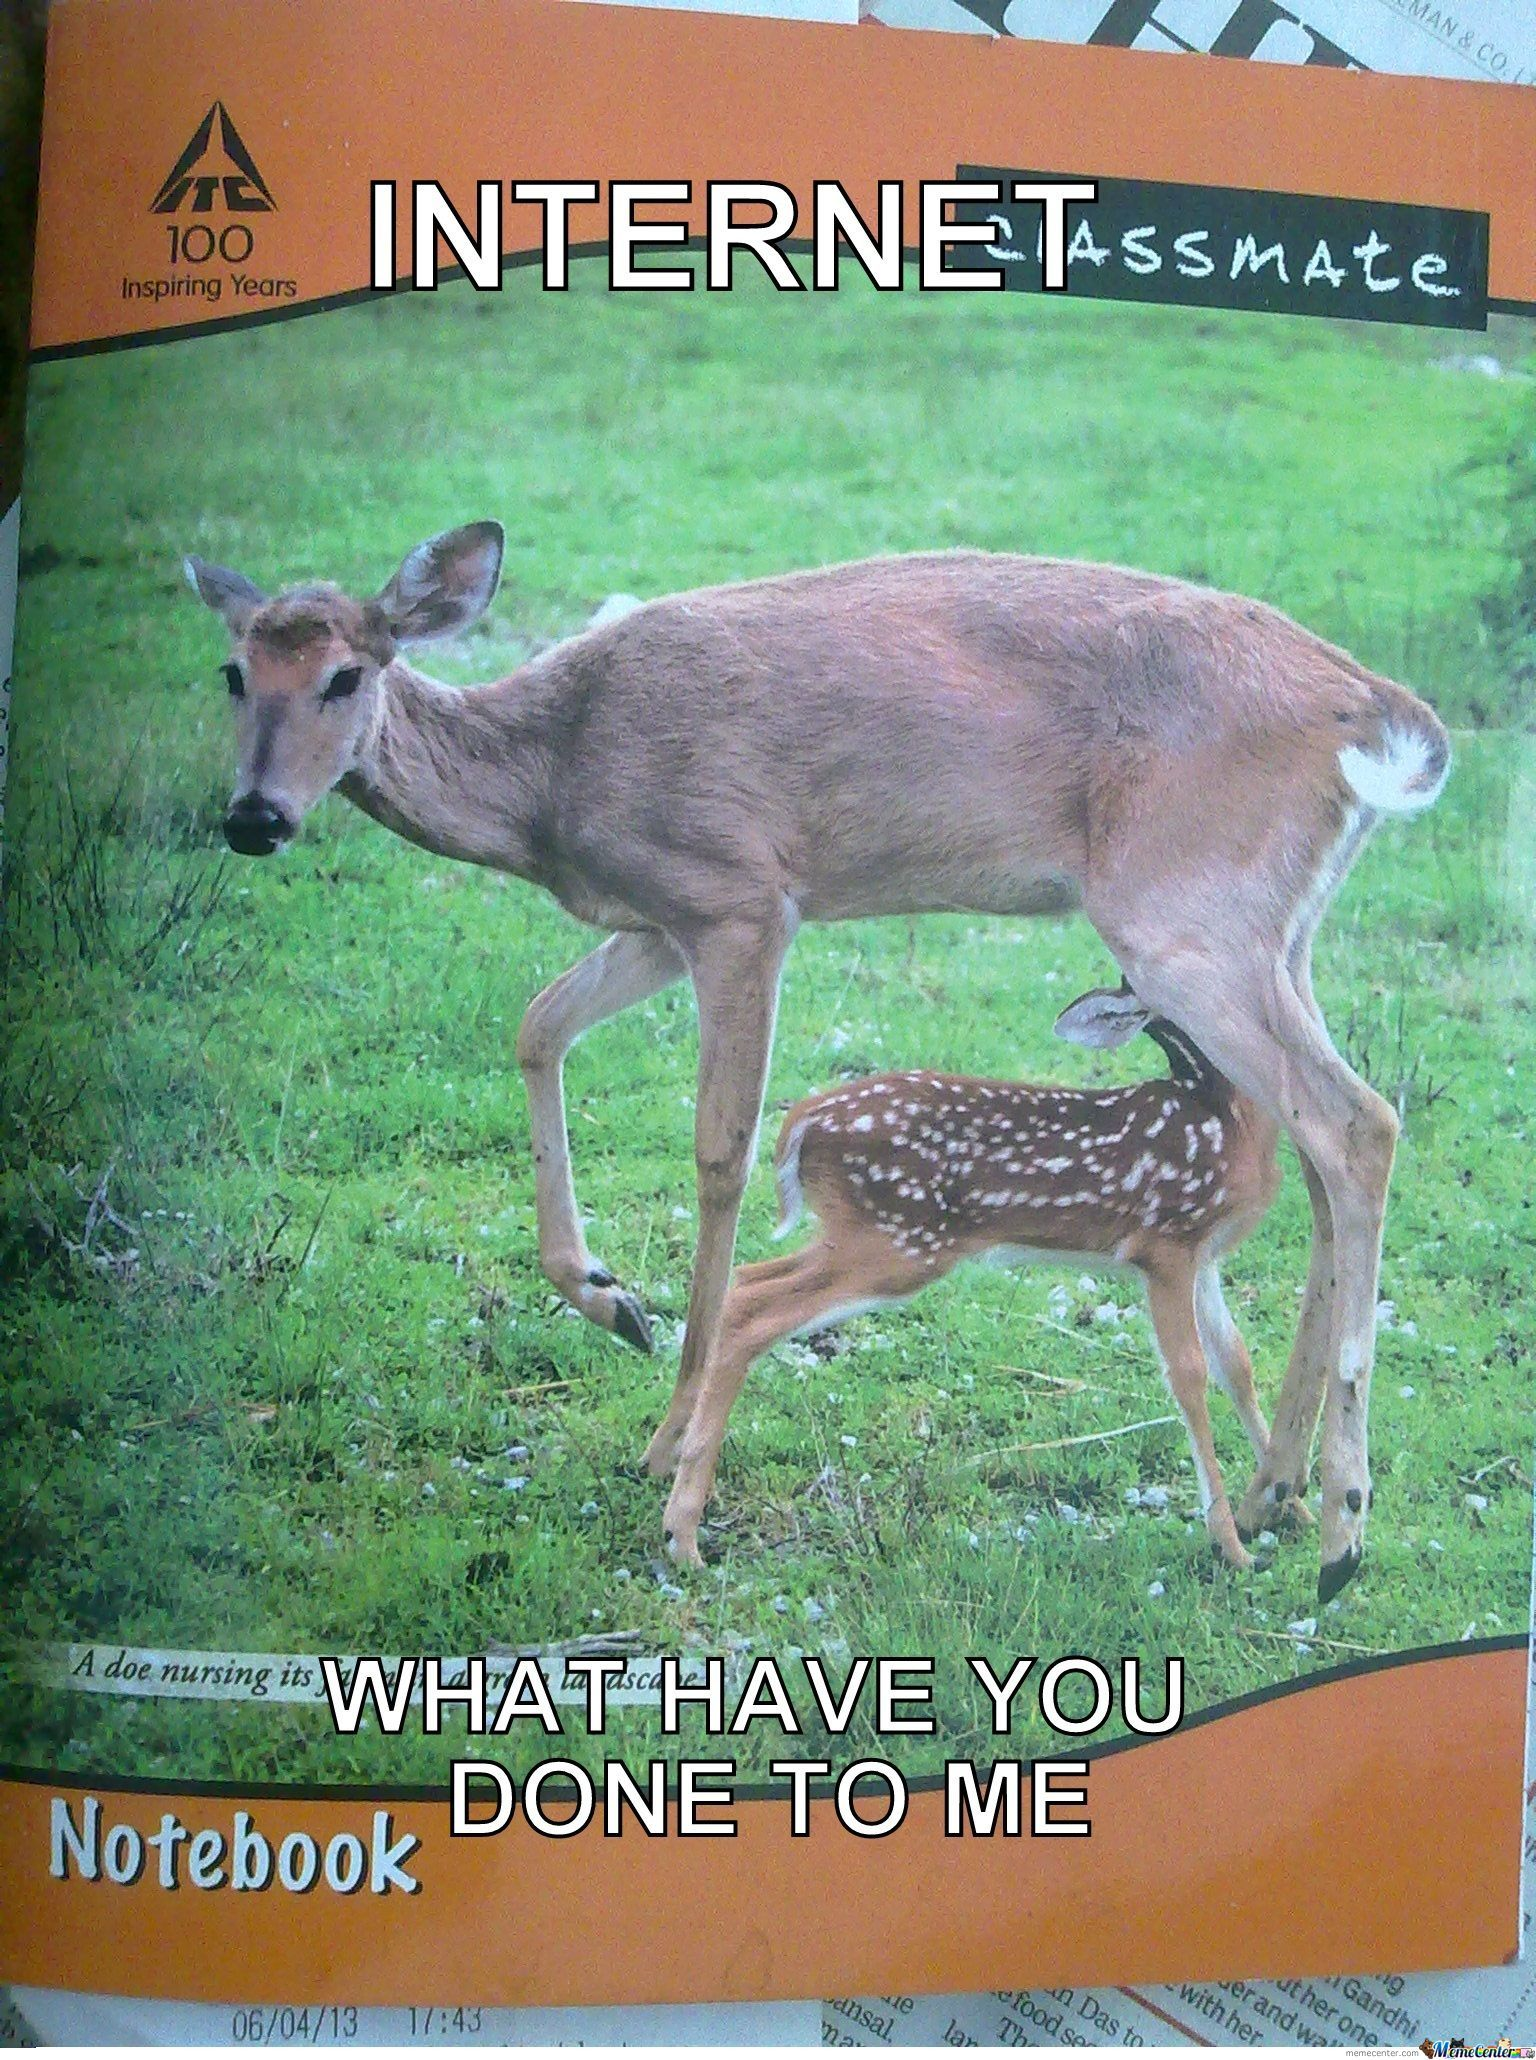 Why Internet Why? That Fawn Was Soo Innocent